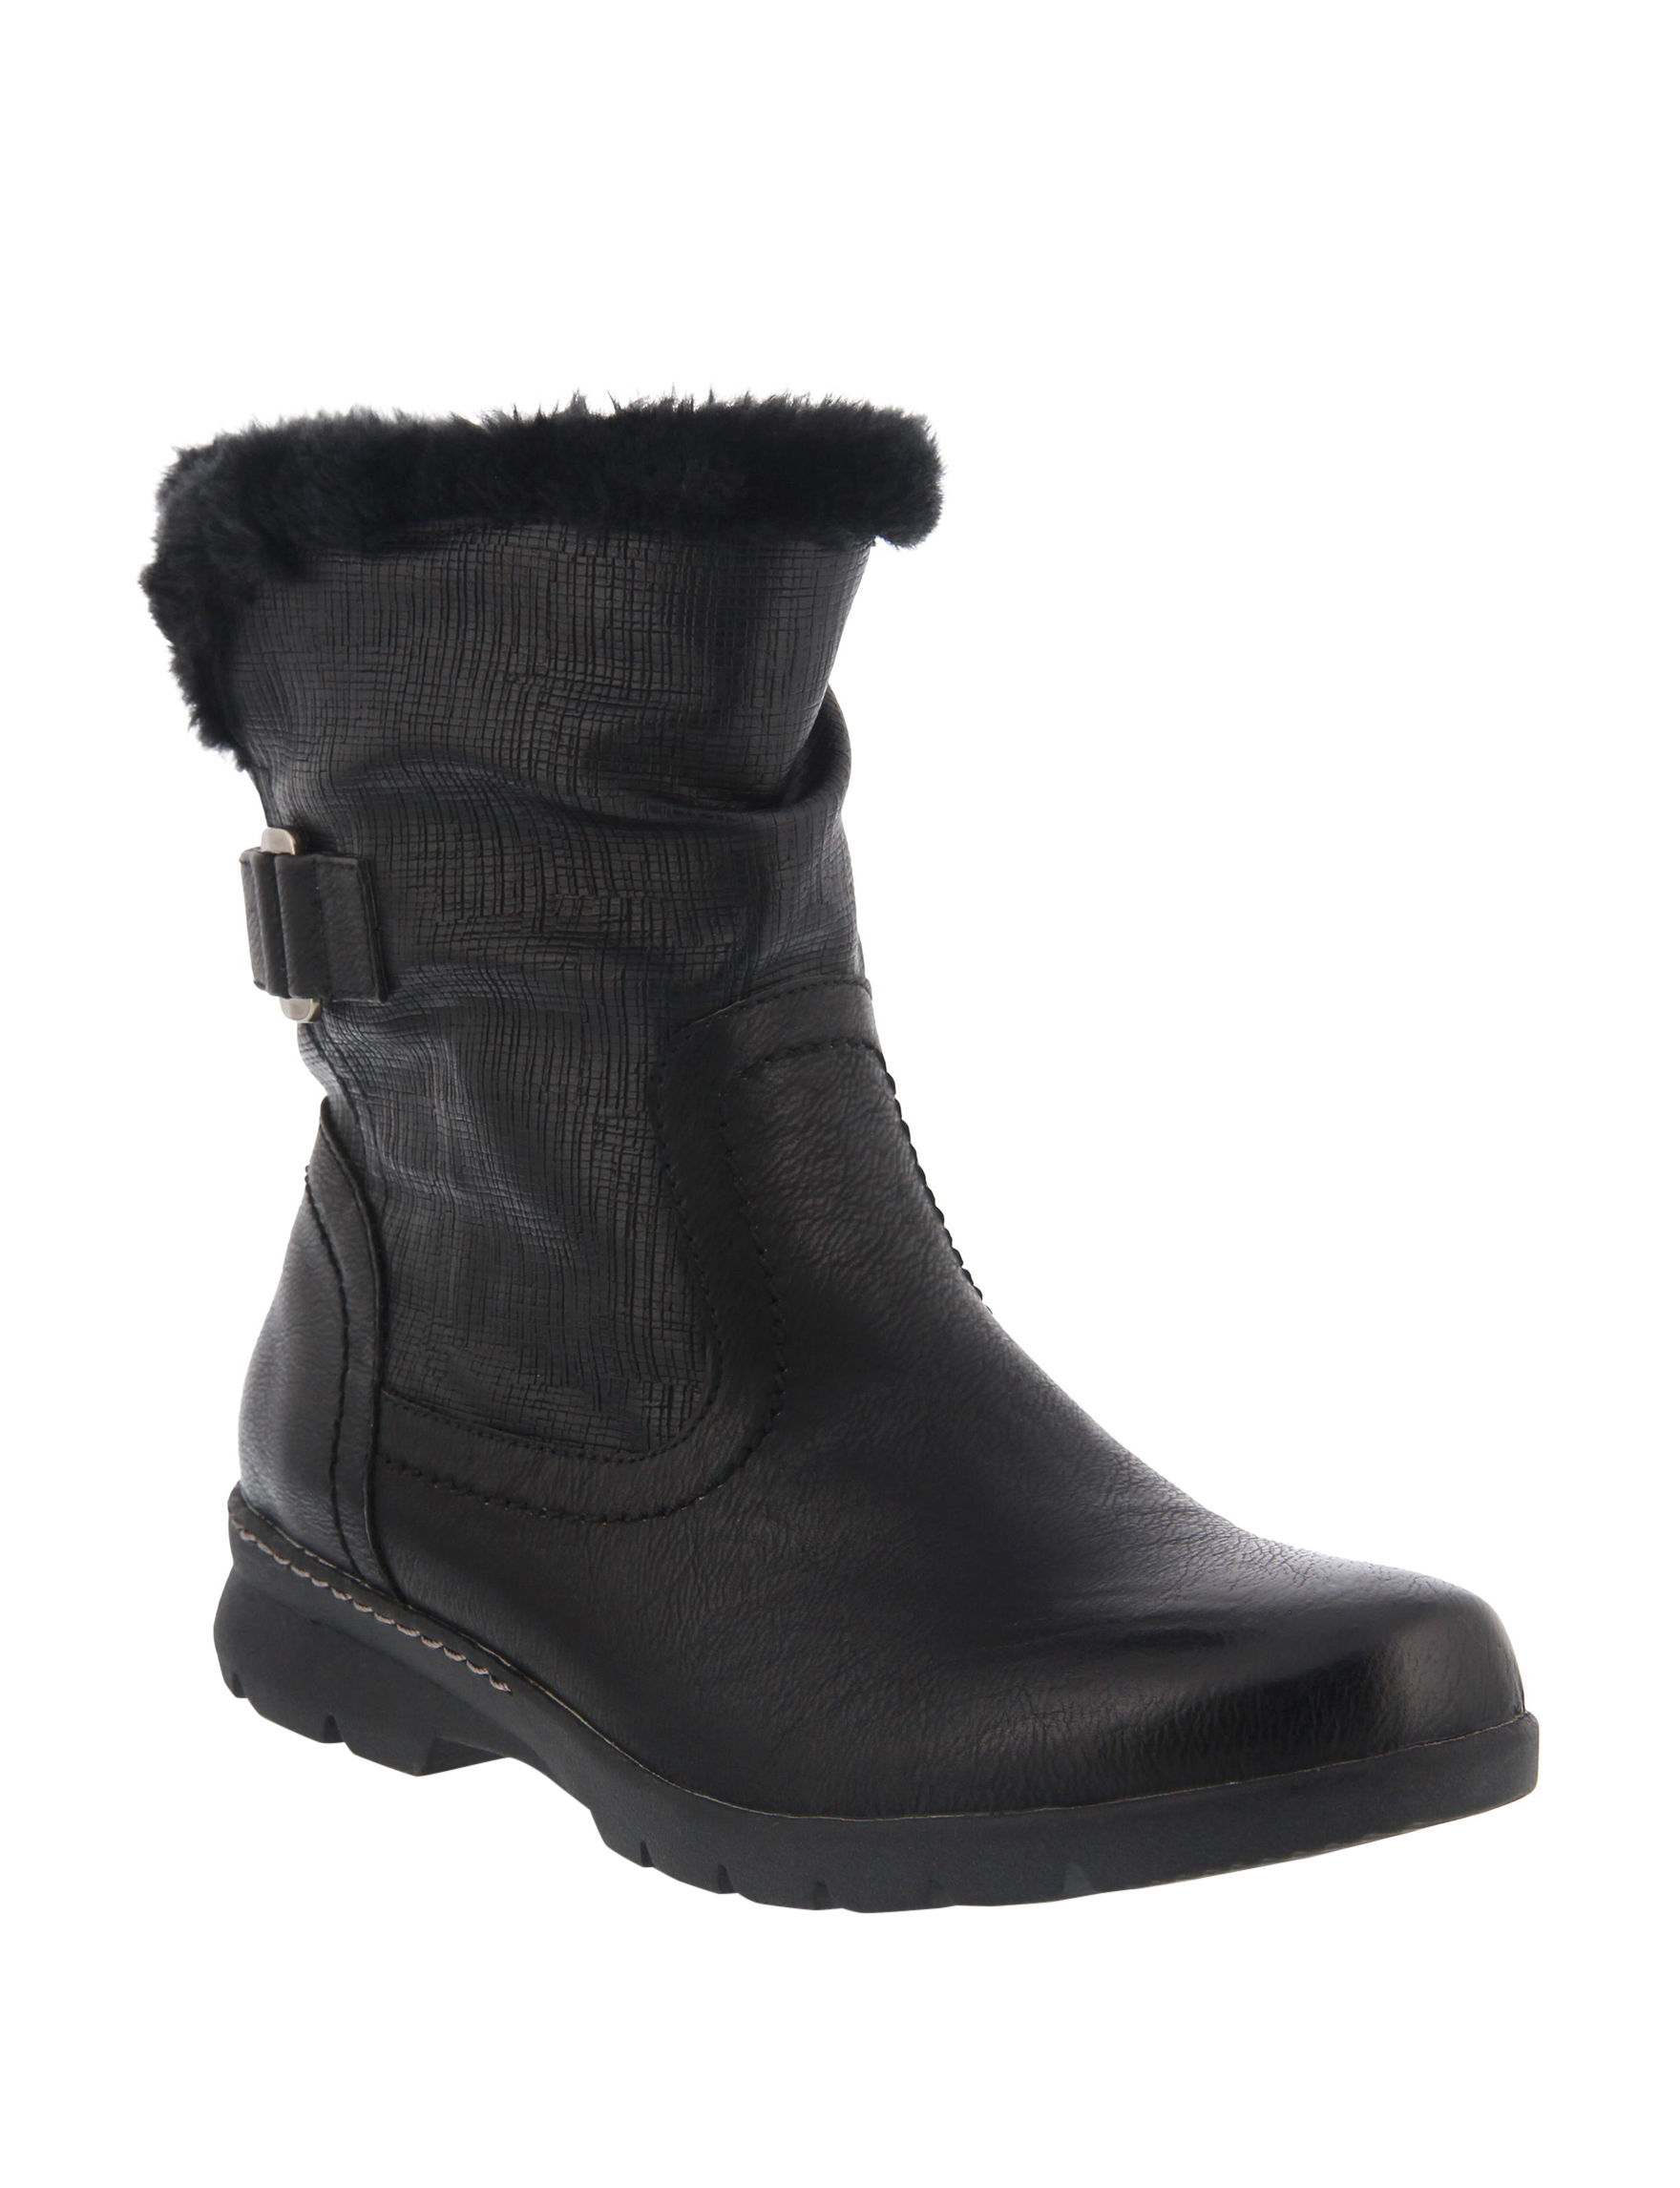 Spring Step Black Winter Boots